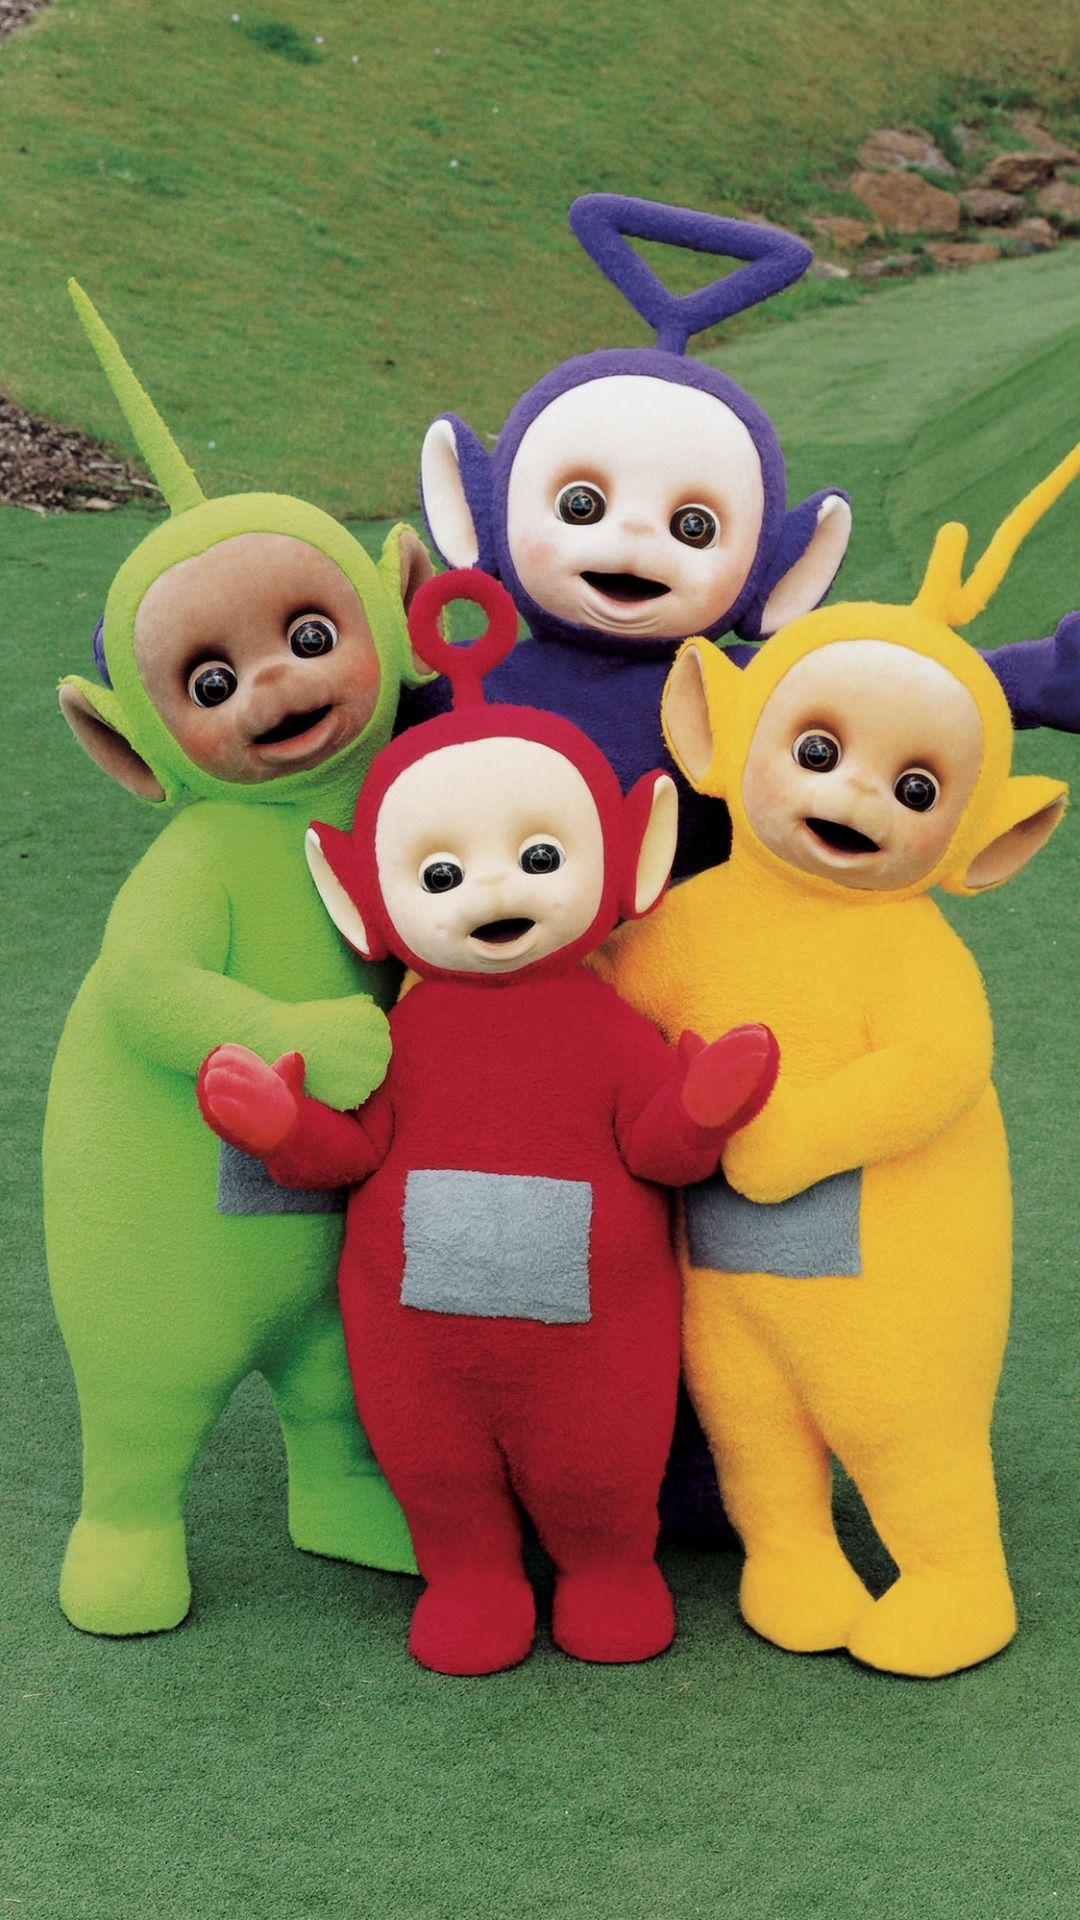 Teletubbies wallpaper images pictures download | Art Wallpapers ...